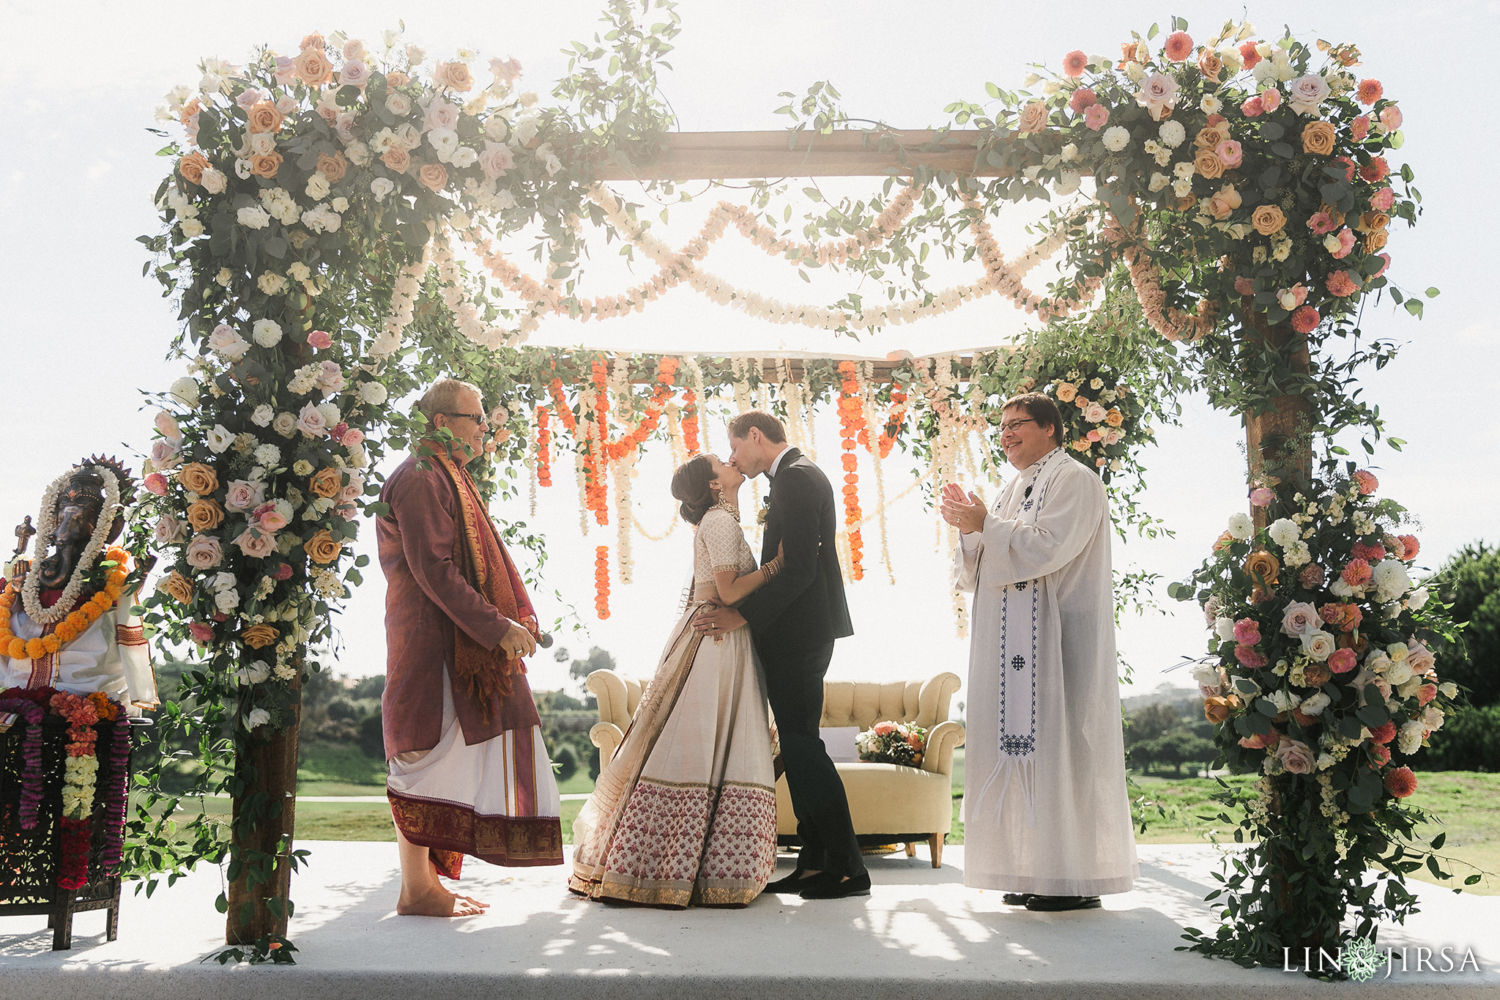 First Kiss Lutheran Ceremony 02 Monarch Beach Resort Filmic Indian Wedding Ceremony